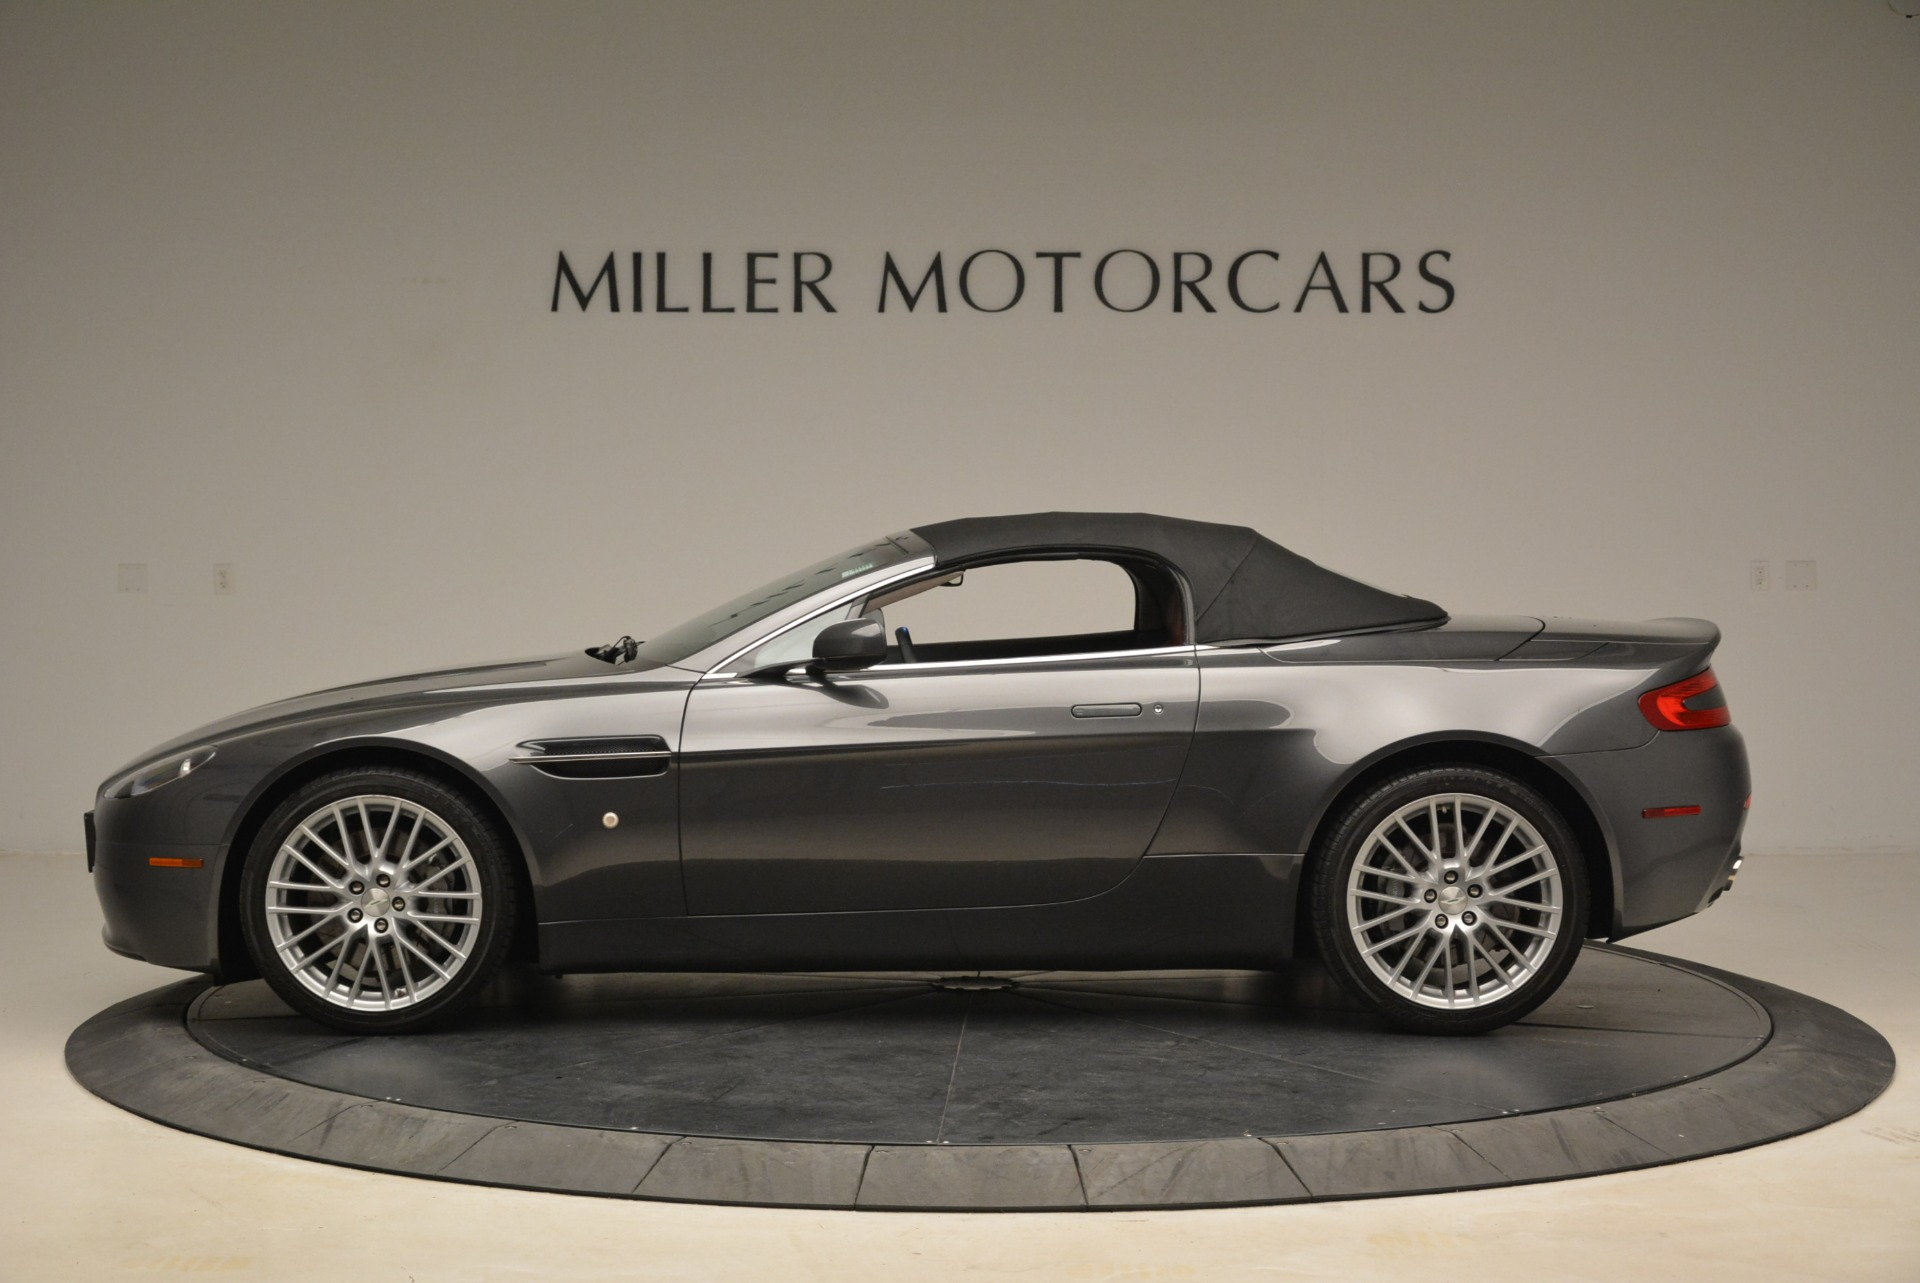 Used 2009 Aston Martin V8 Vantage Roadster For Sale In Westport, CT 2123_p15